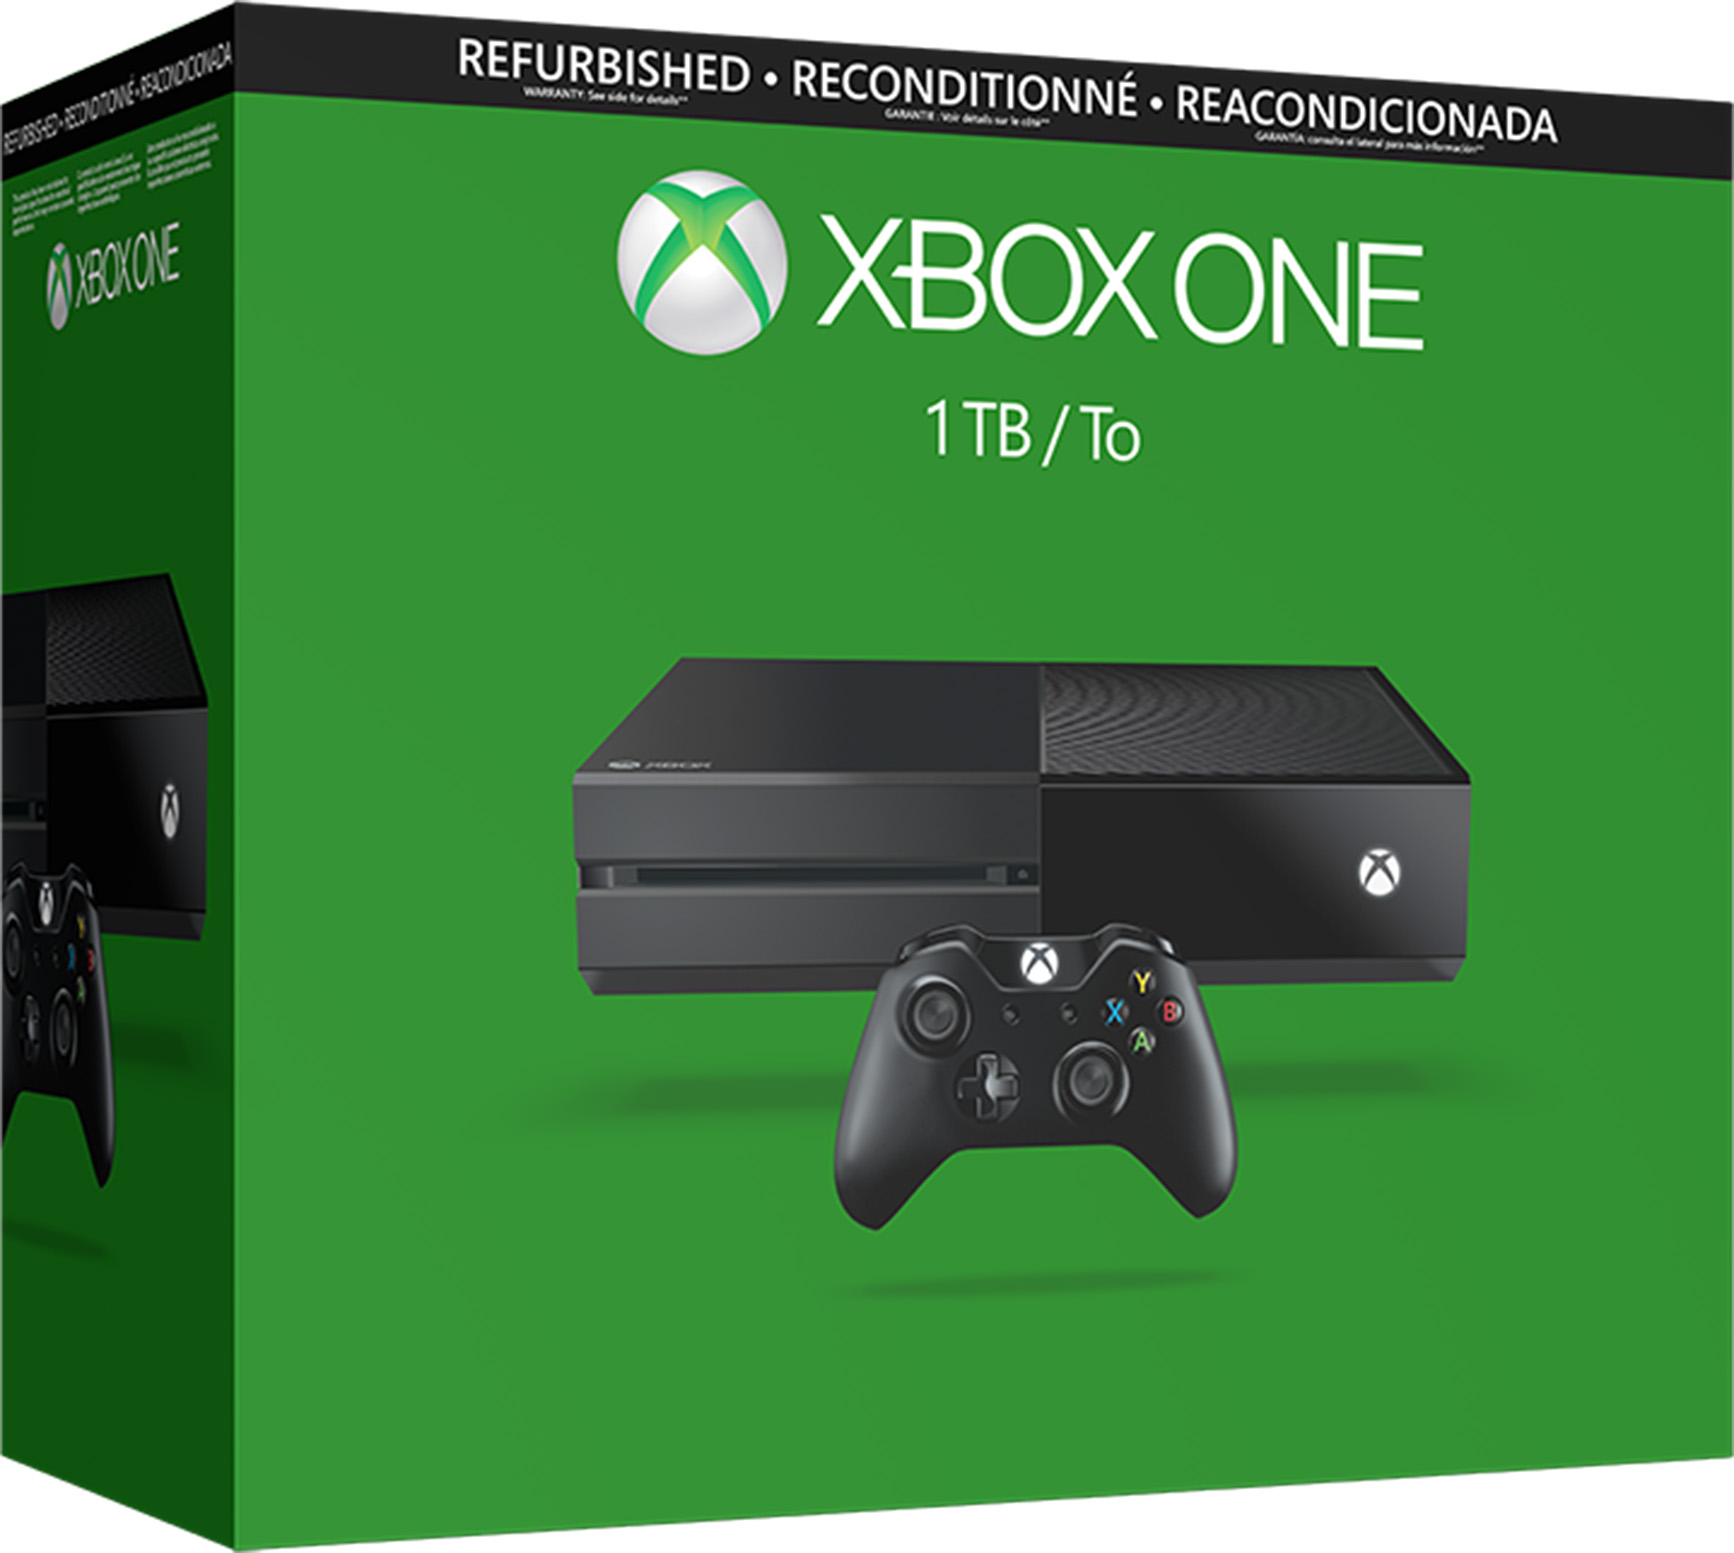 Refurbished 1TB Xbox One Console